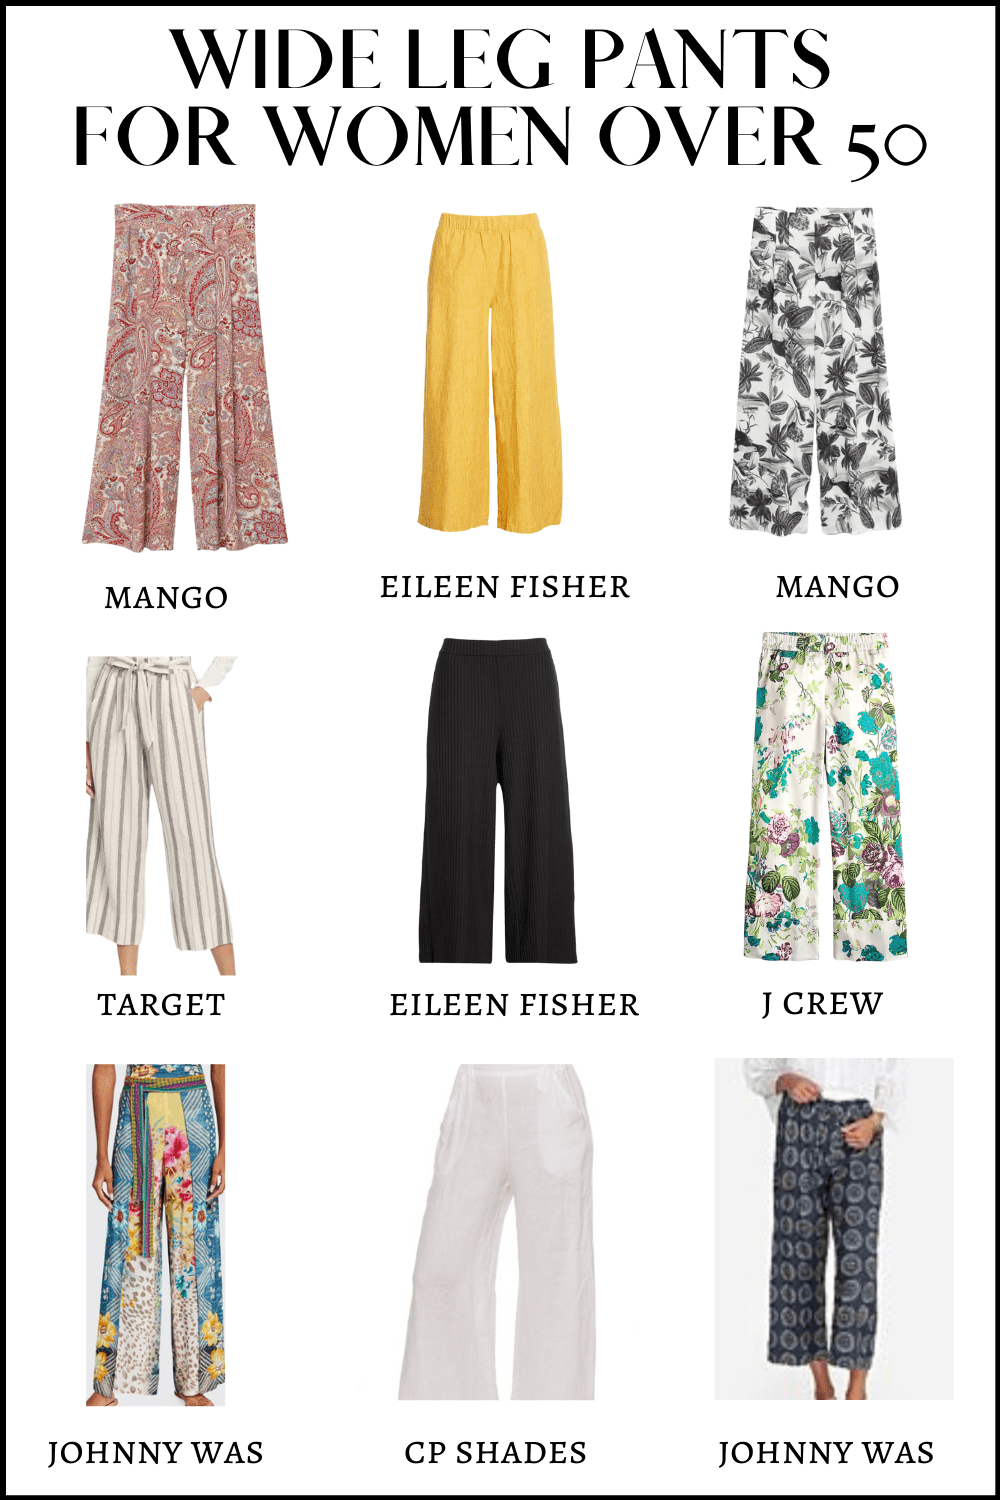 Wide Leg Pants for Women over 50